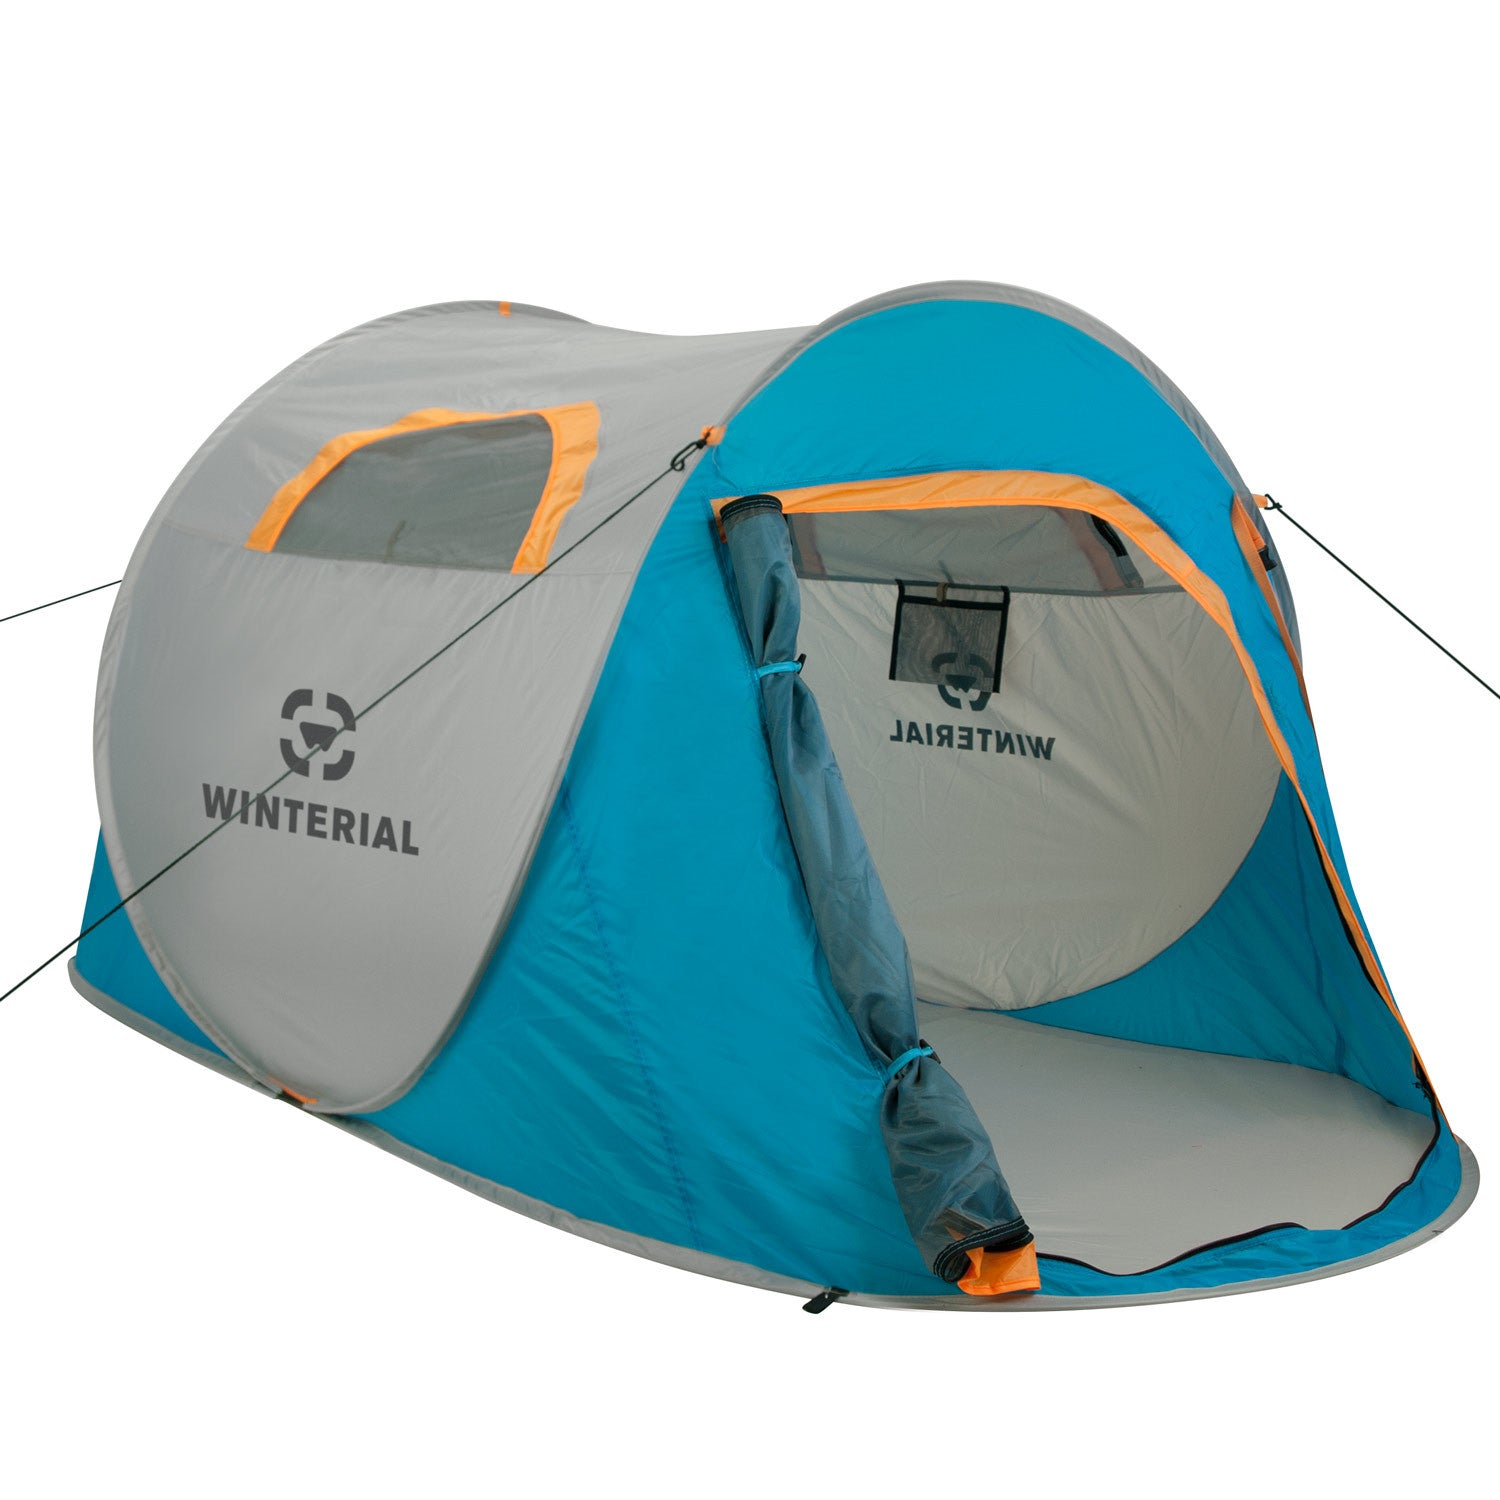 ... 2 person pop up tent blue and grey with 1 door ...  sc 1 st  Winterial.com & 2-Person Instant Pop-Up Tent Stores Flat in Carry Bag - Winterial.com